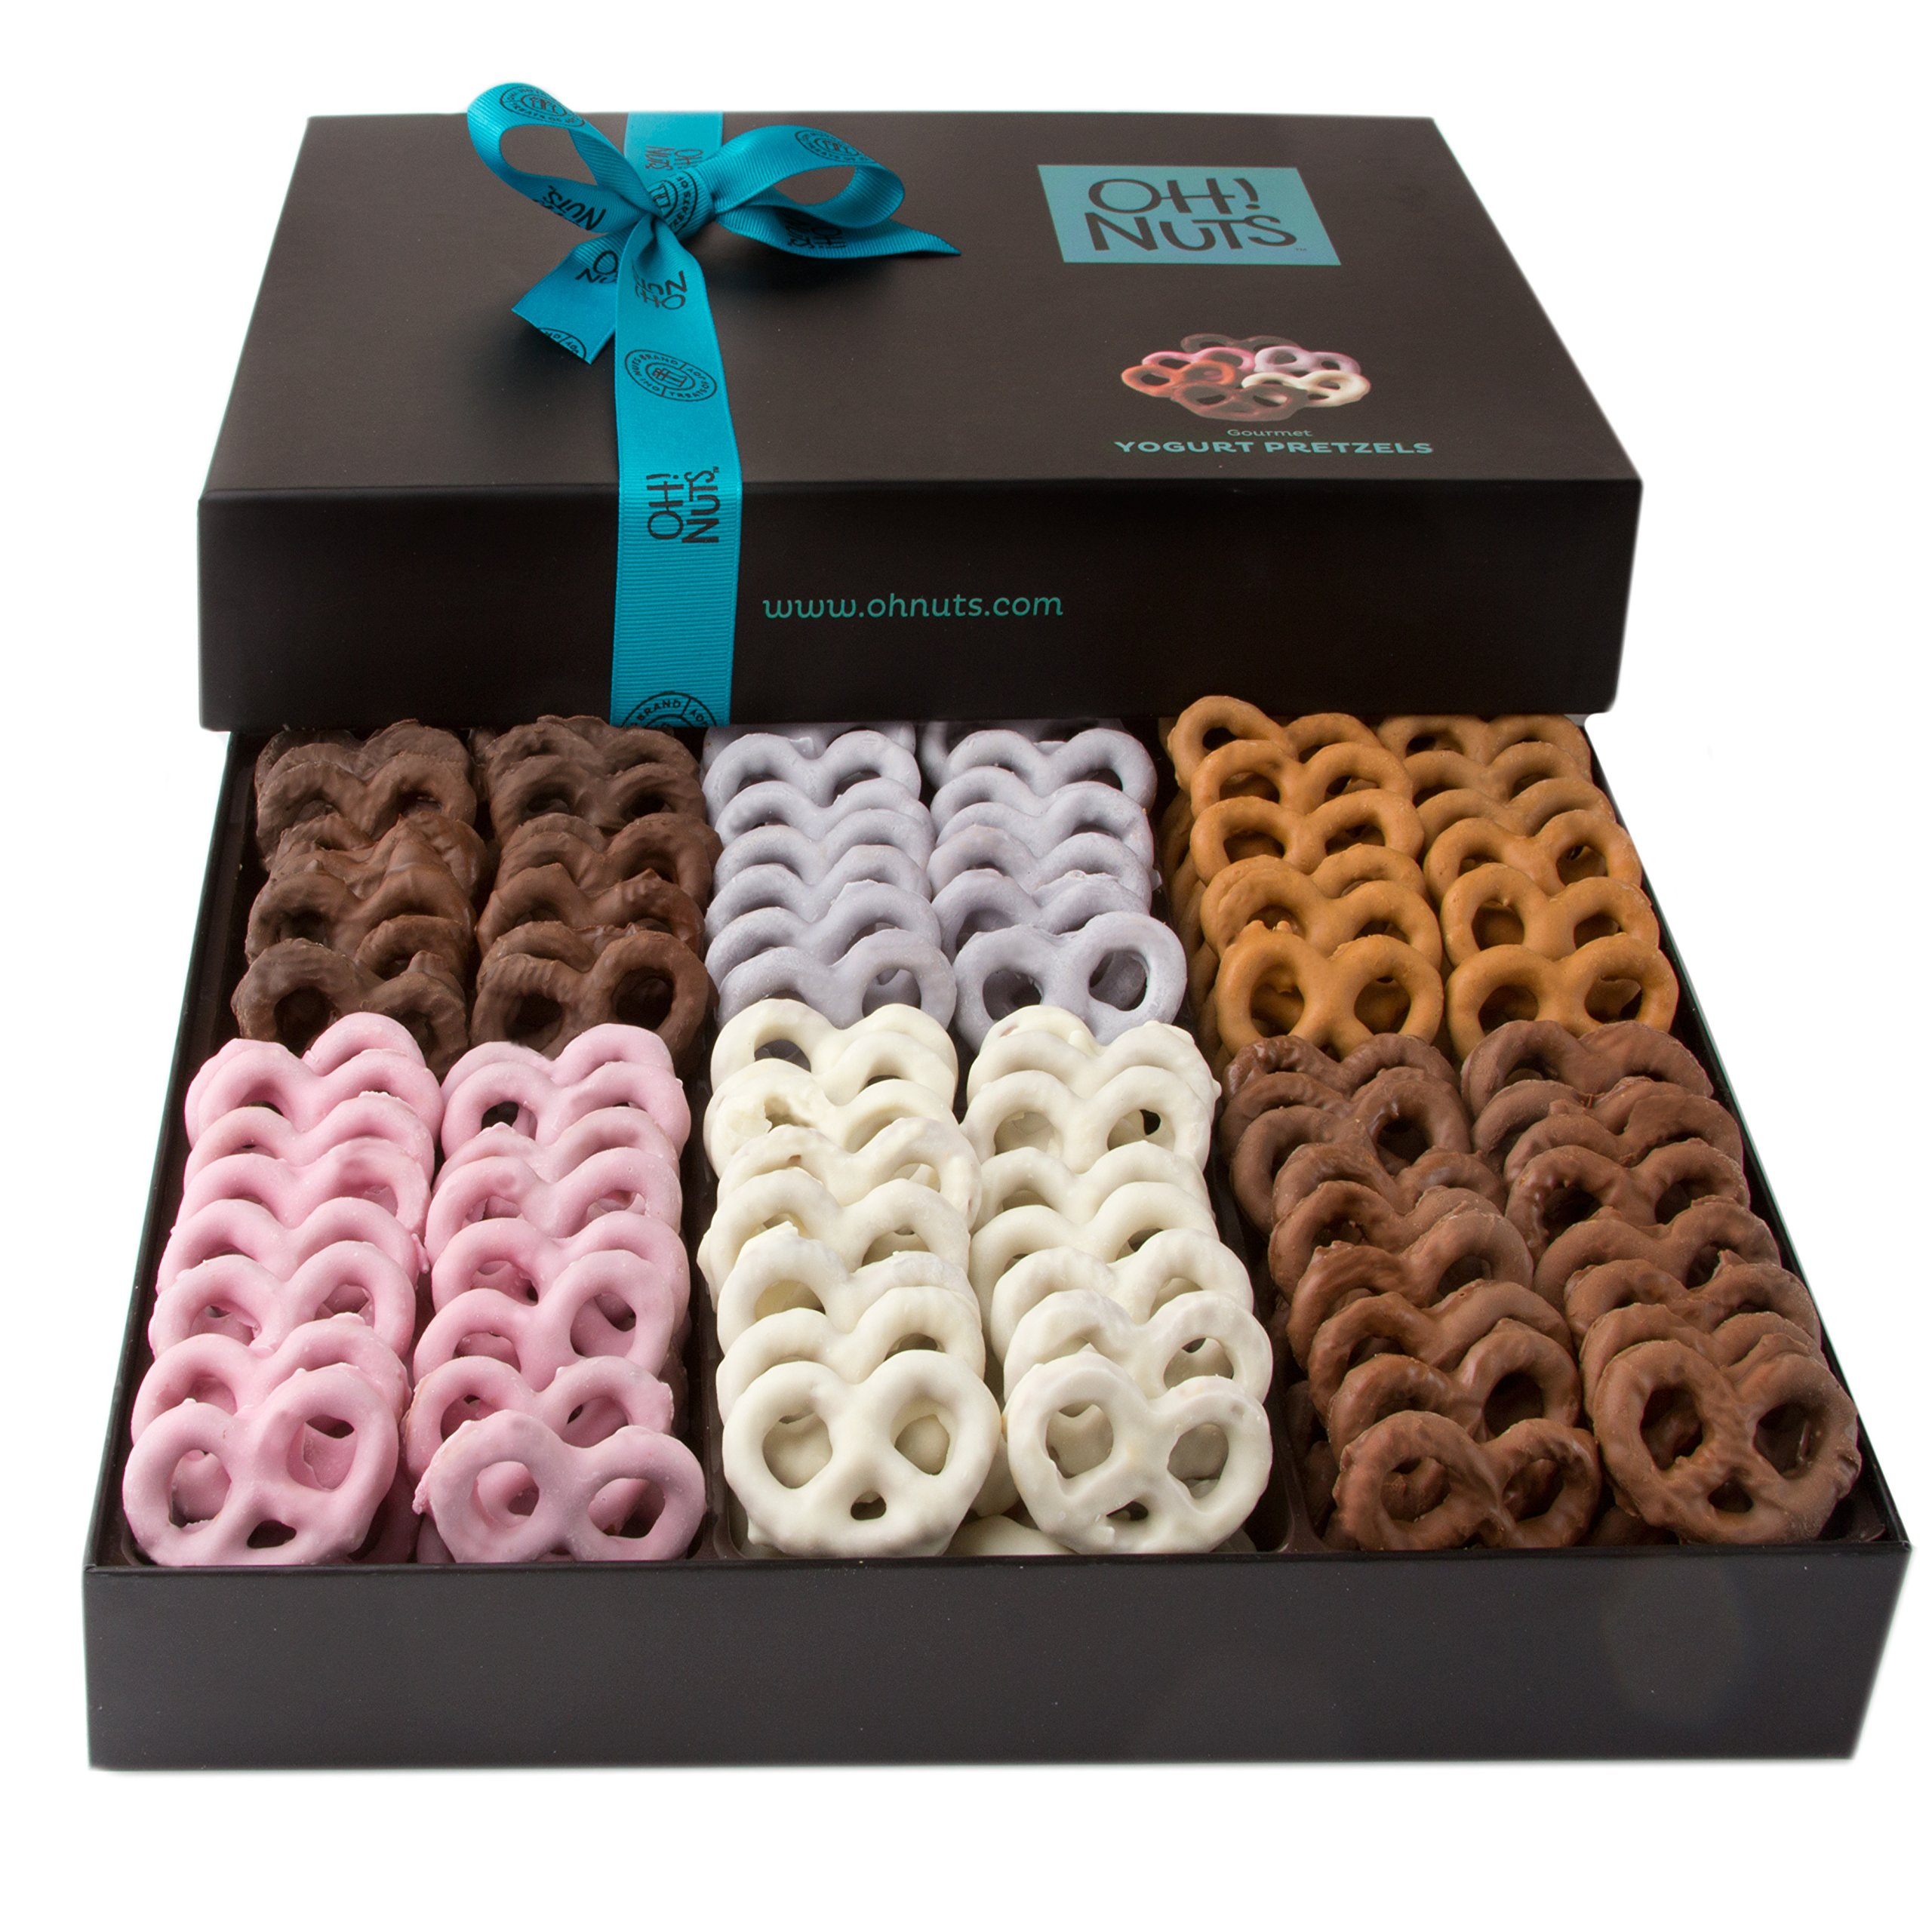 Oh! Nuts Chocolate Covered Pretzels Gift Basket, 6 Variety Assorted Flavored Set of Yogurt, Milk & Dark Gift Box, Send for Christmas Holiday Valentine's or Mother's Day a Sweet Treat for Men & Women by Oh! Nuts